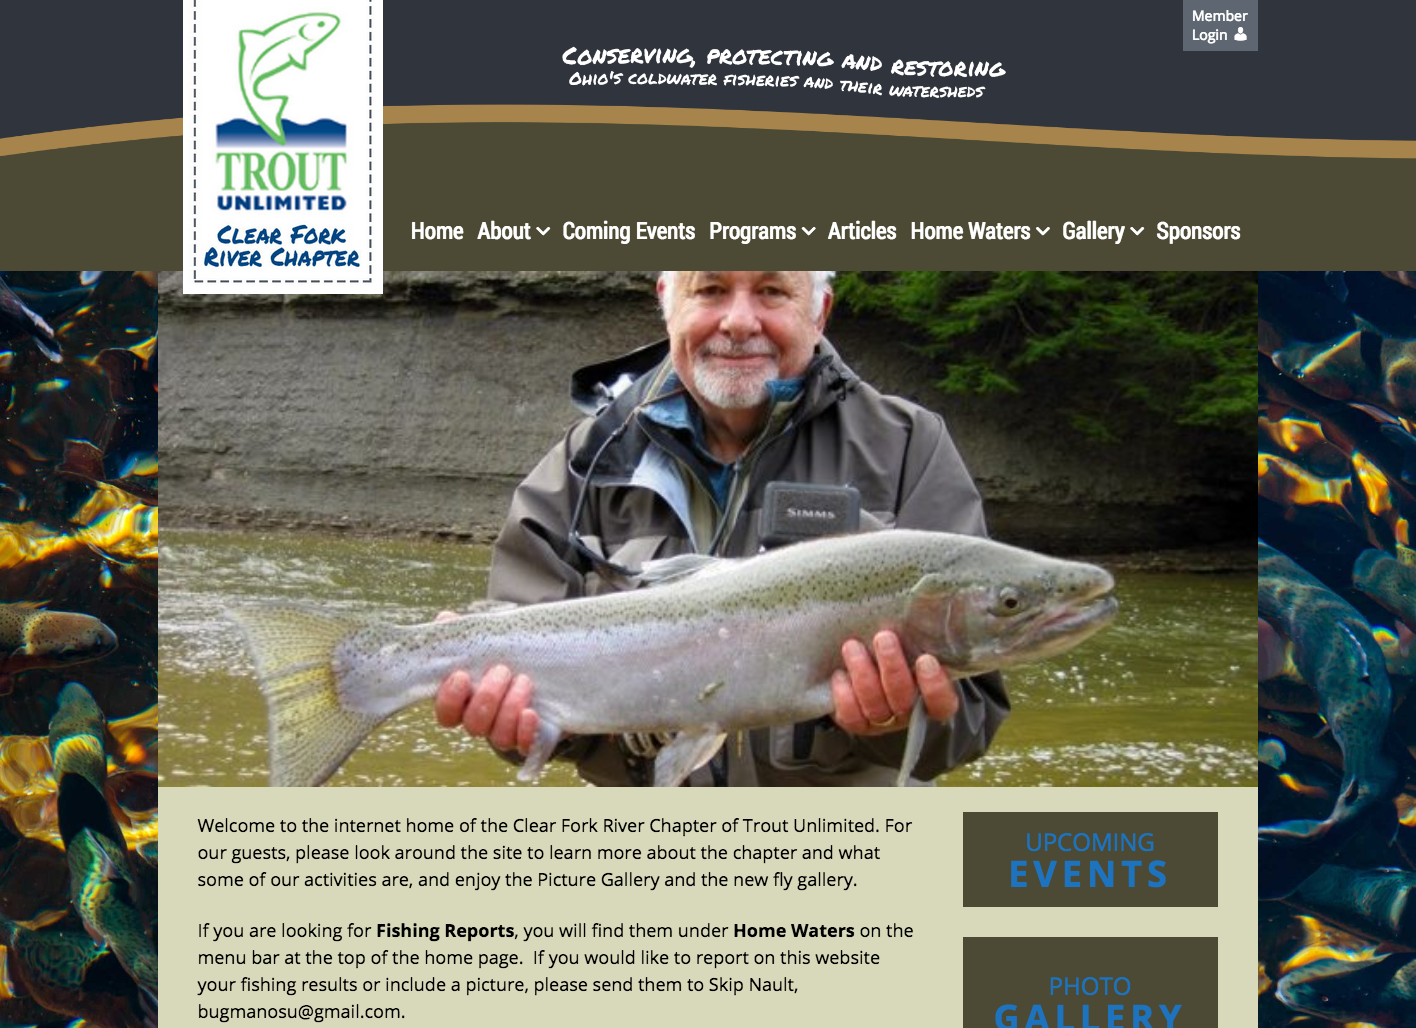 Trout Unlimited Website